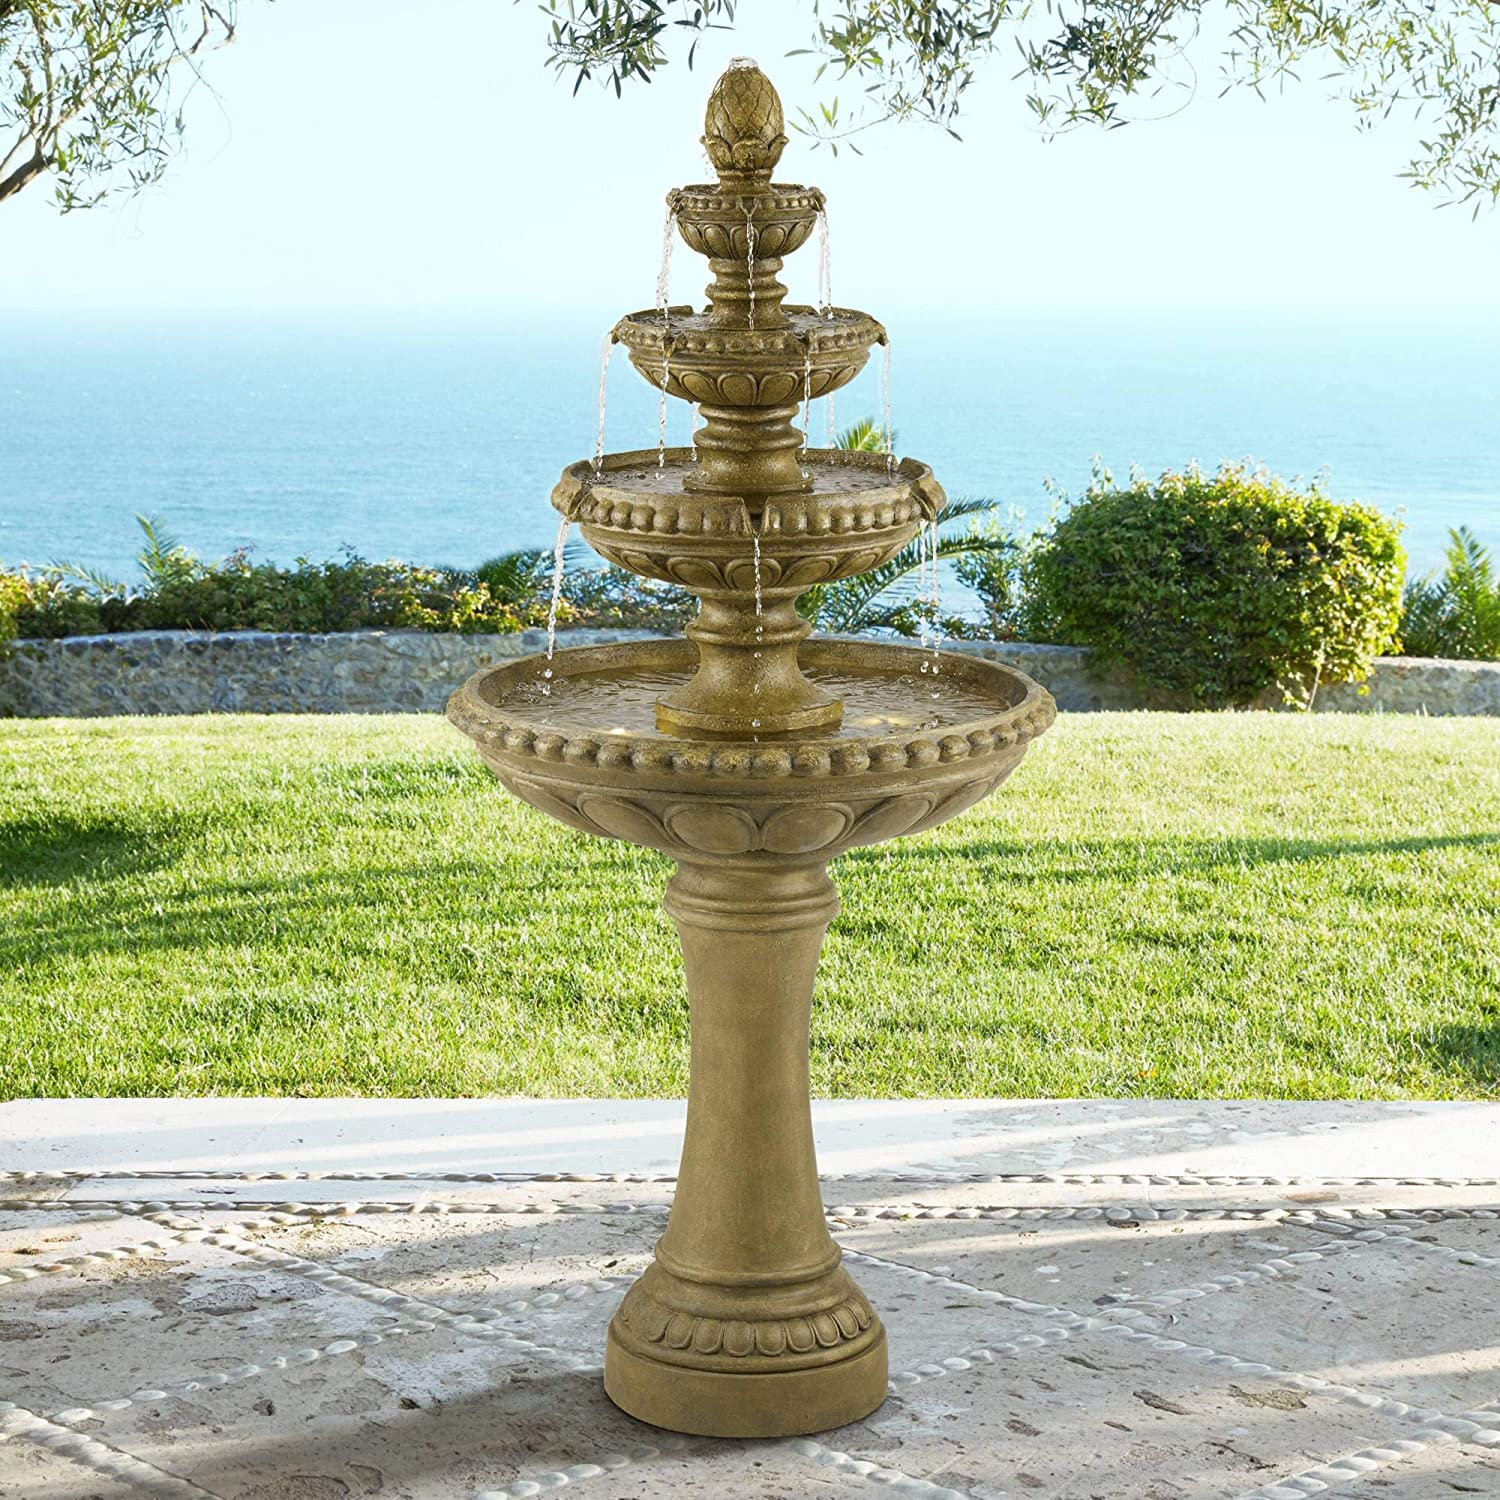 """John Timberland Sag Harbor Italian Outdoor Floor Water Fountain with Light LED 60"""" High 4 Tiered for Yard Garden Patio Deck Home : Patio, Lawn & Garden"""